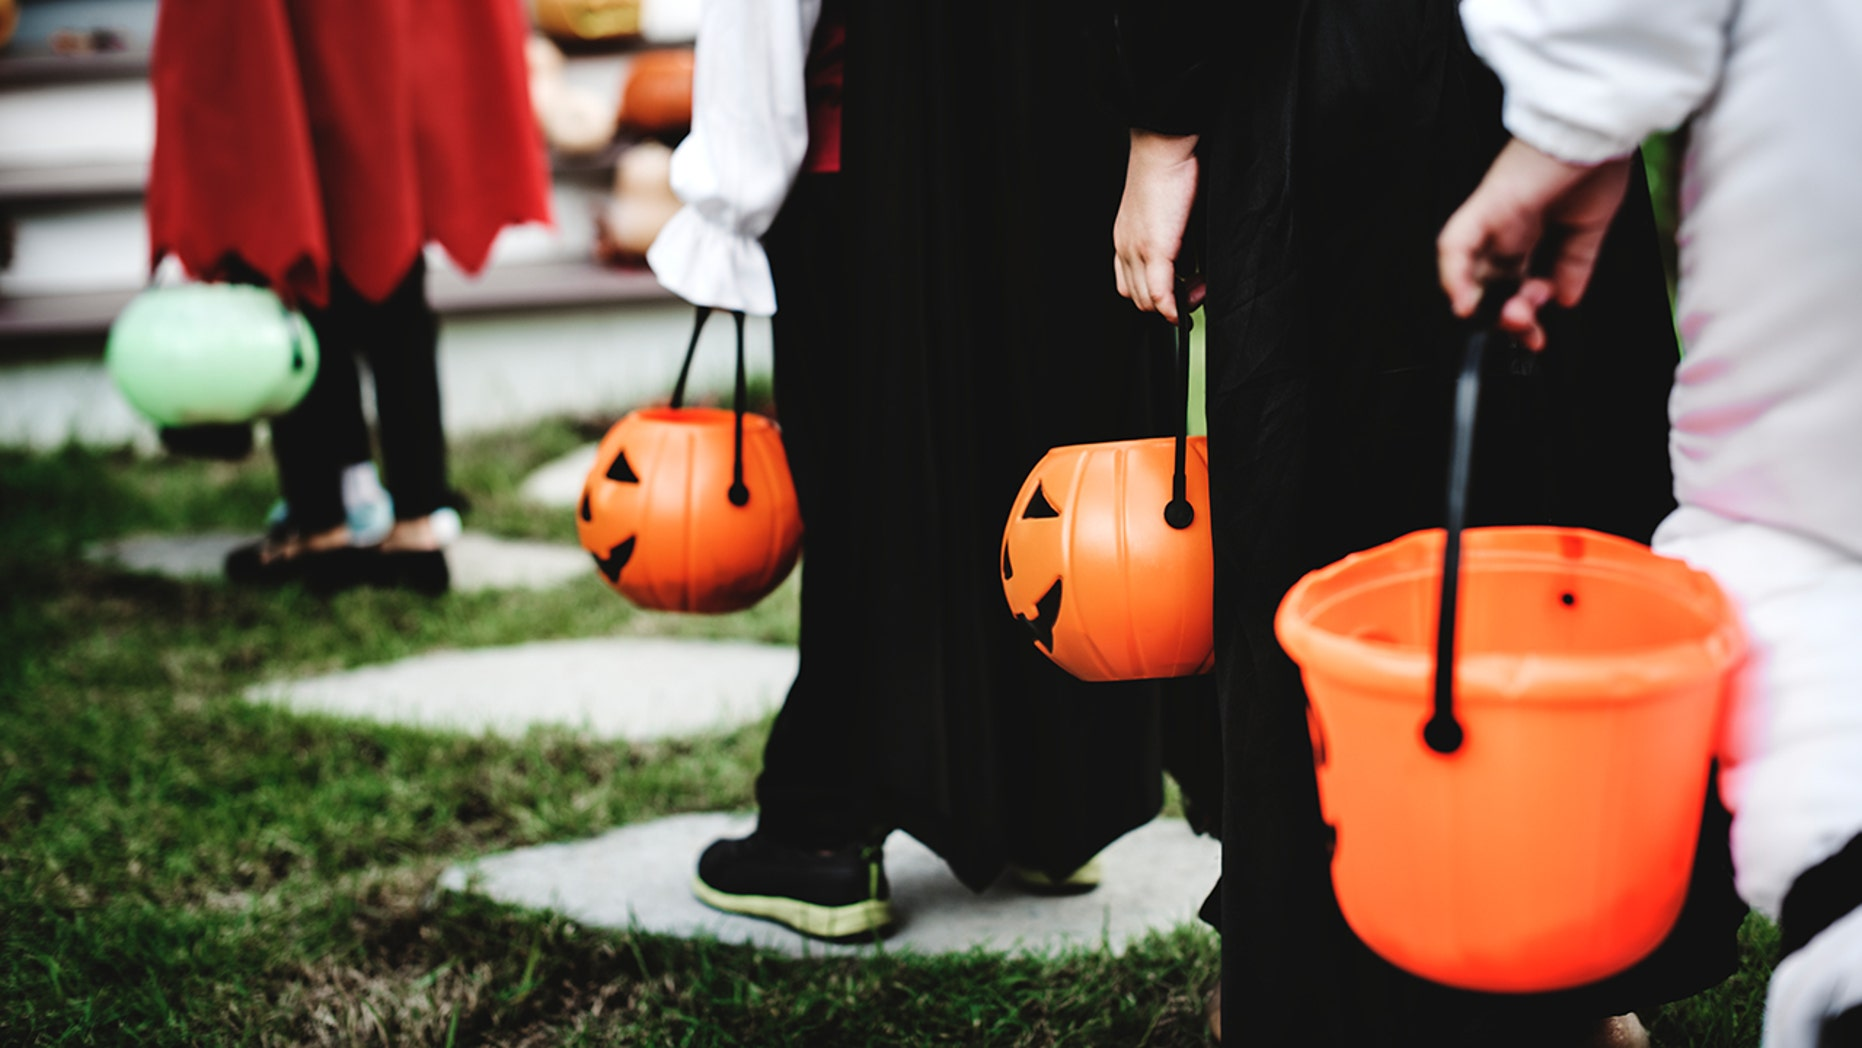 A mom who's too scared to go out on Halloween is hiring someone to take her kids trick-or-treating.